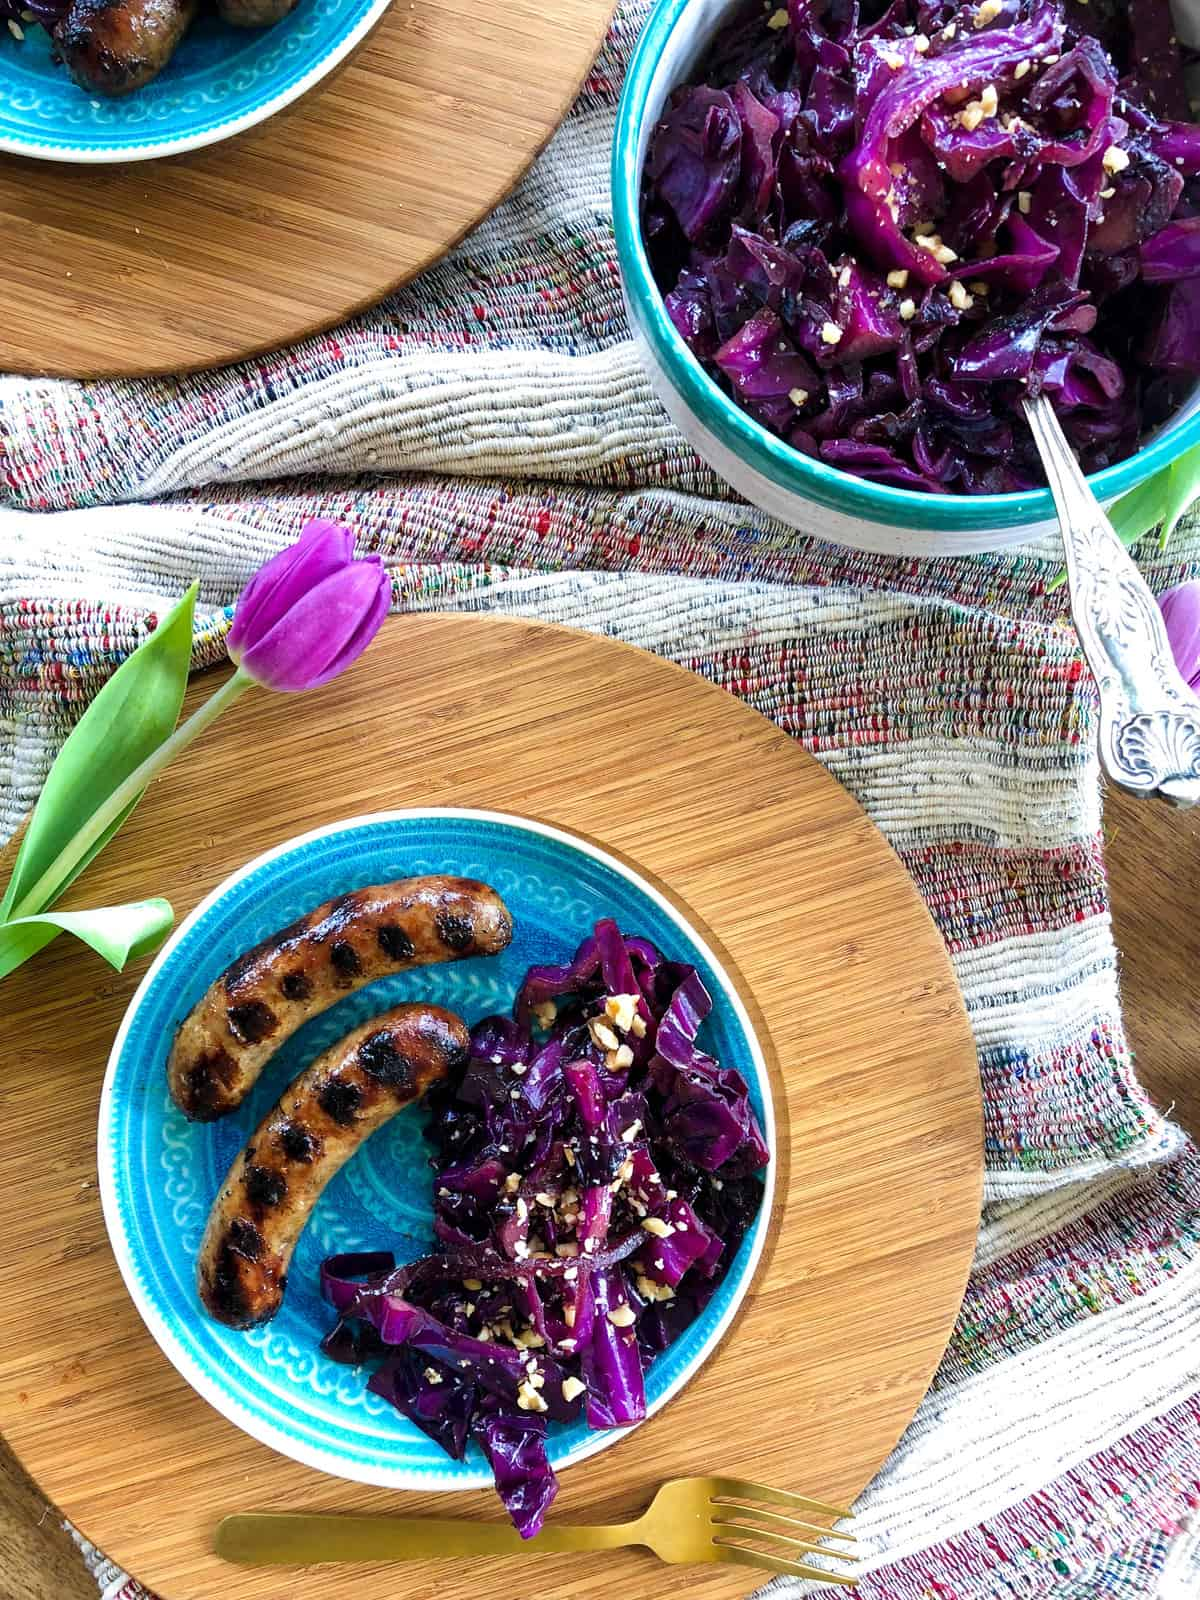 Braised Red Cabbage topped with Crushed Walnuts